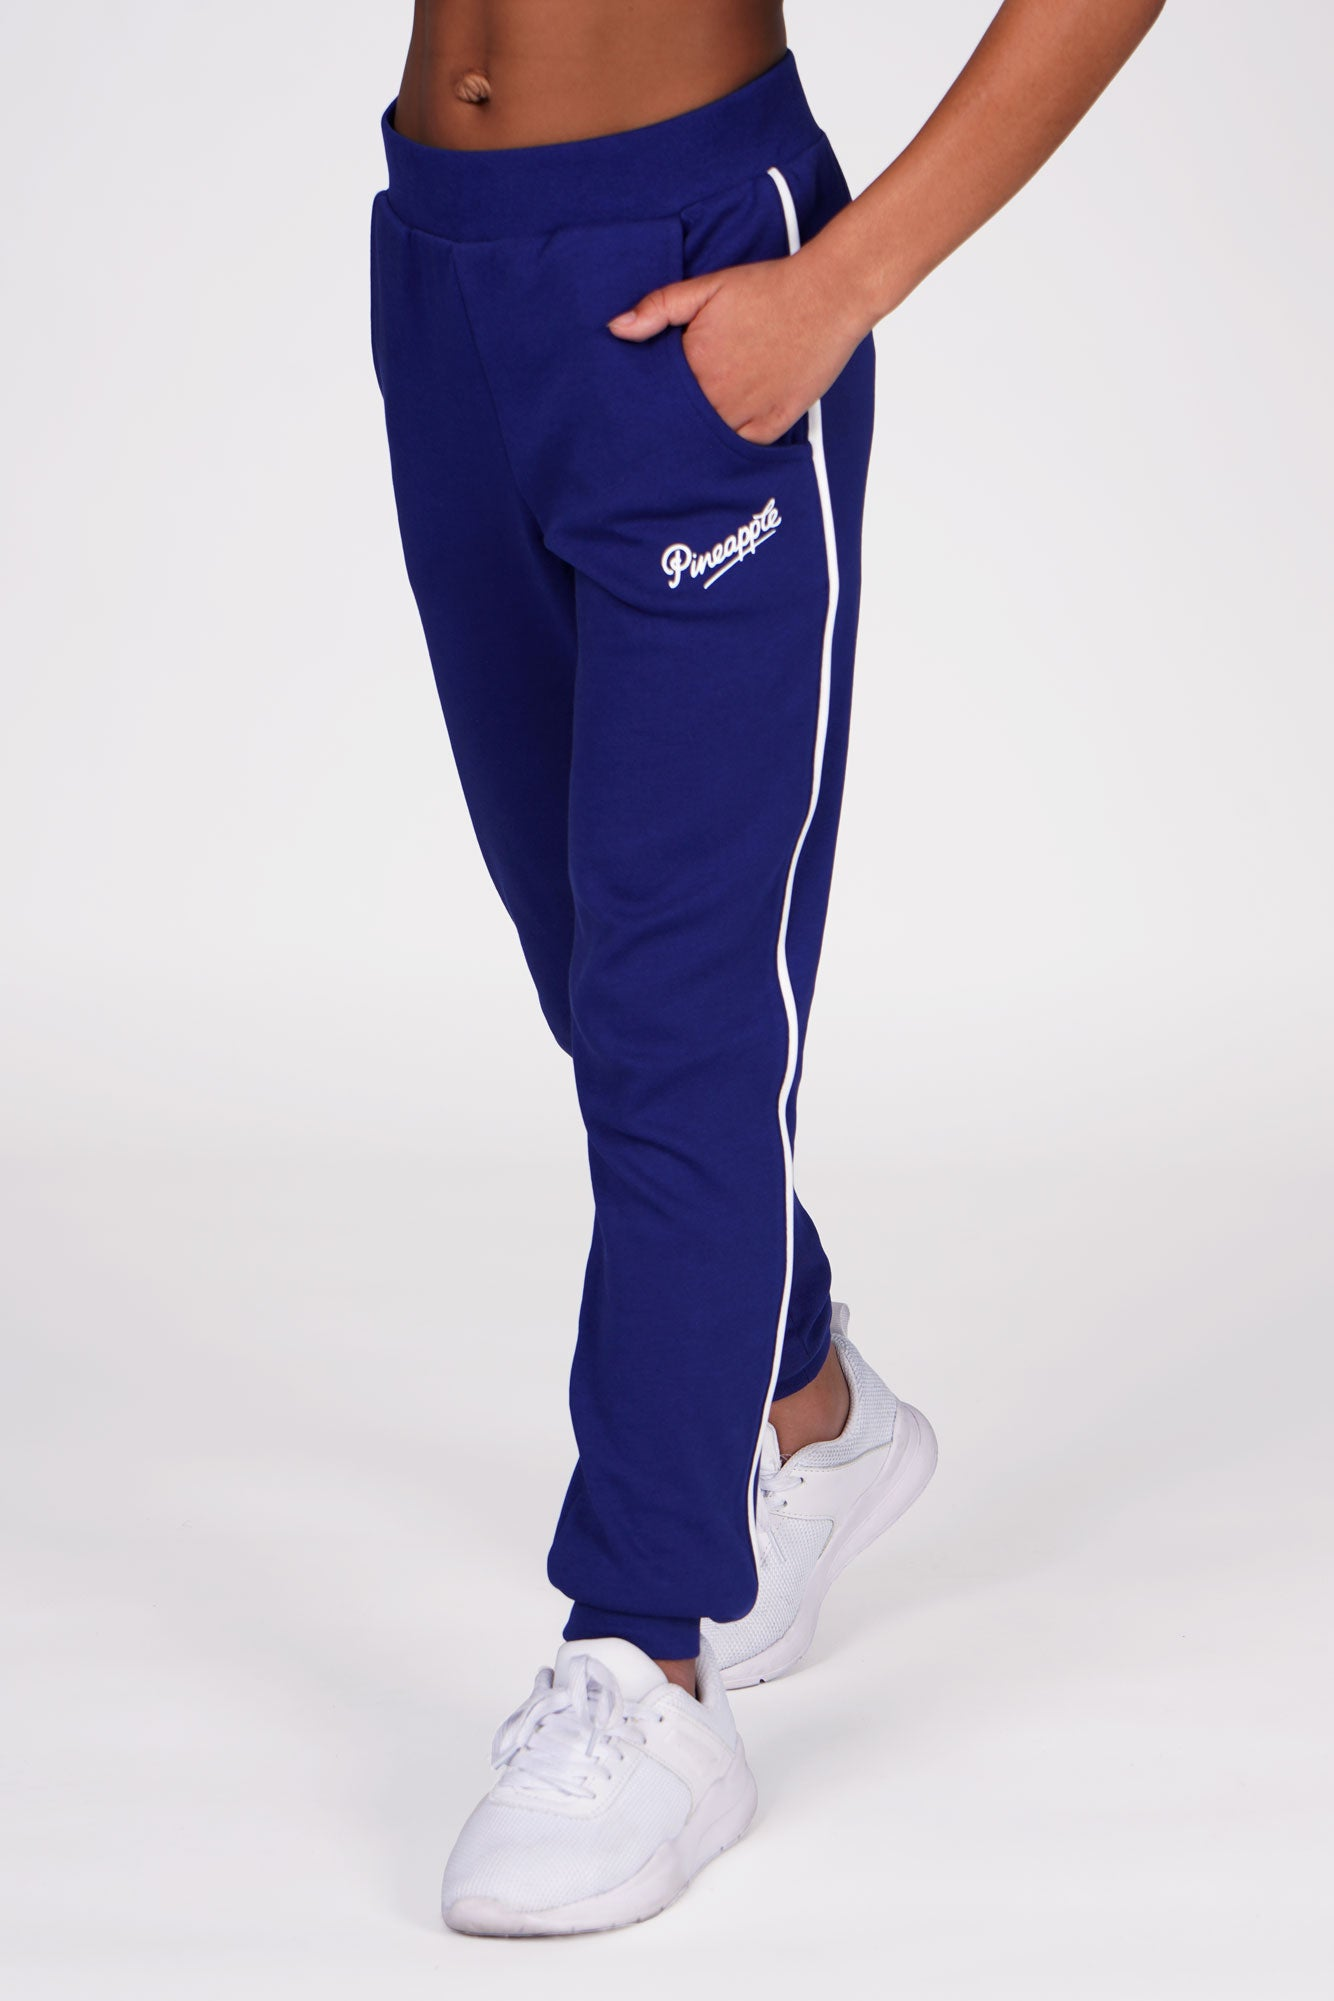 Girl wearing Pineapple Navy Pocket Joggers with white stripes